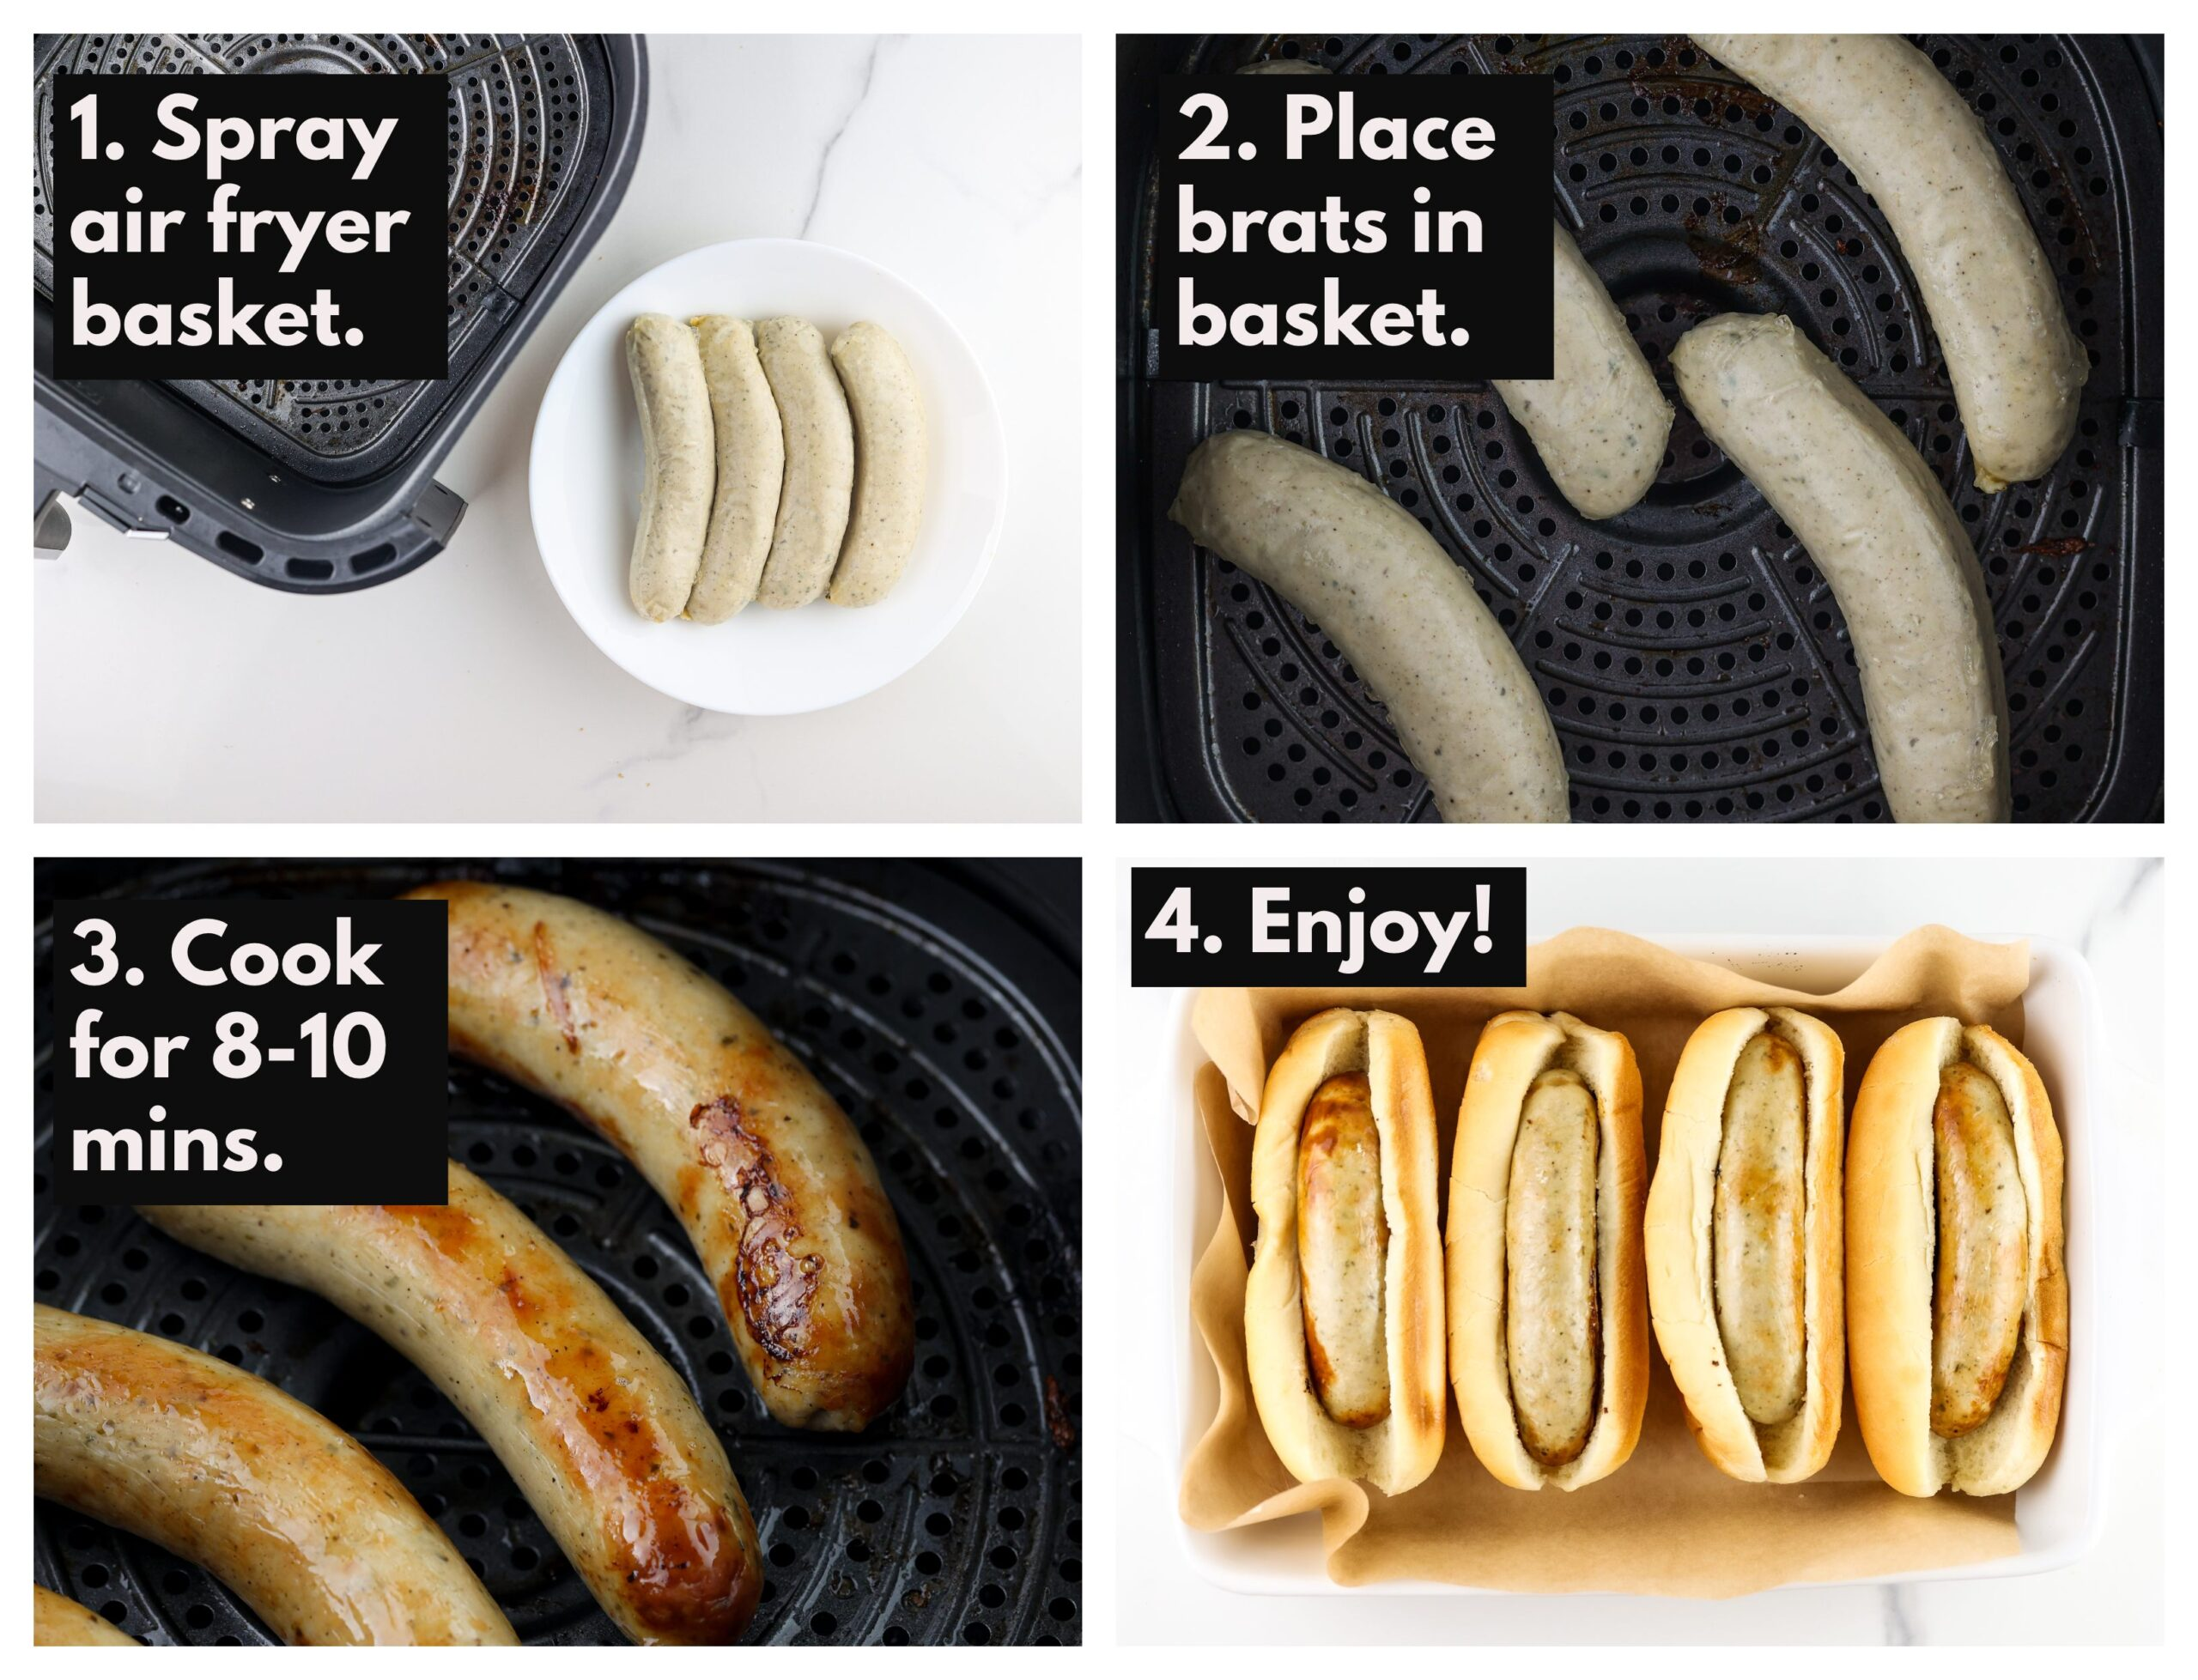 Step-by-step directions for making the sausages.